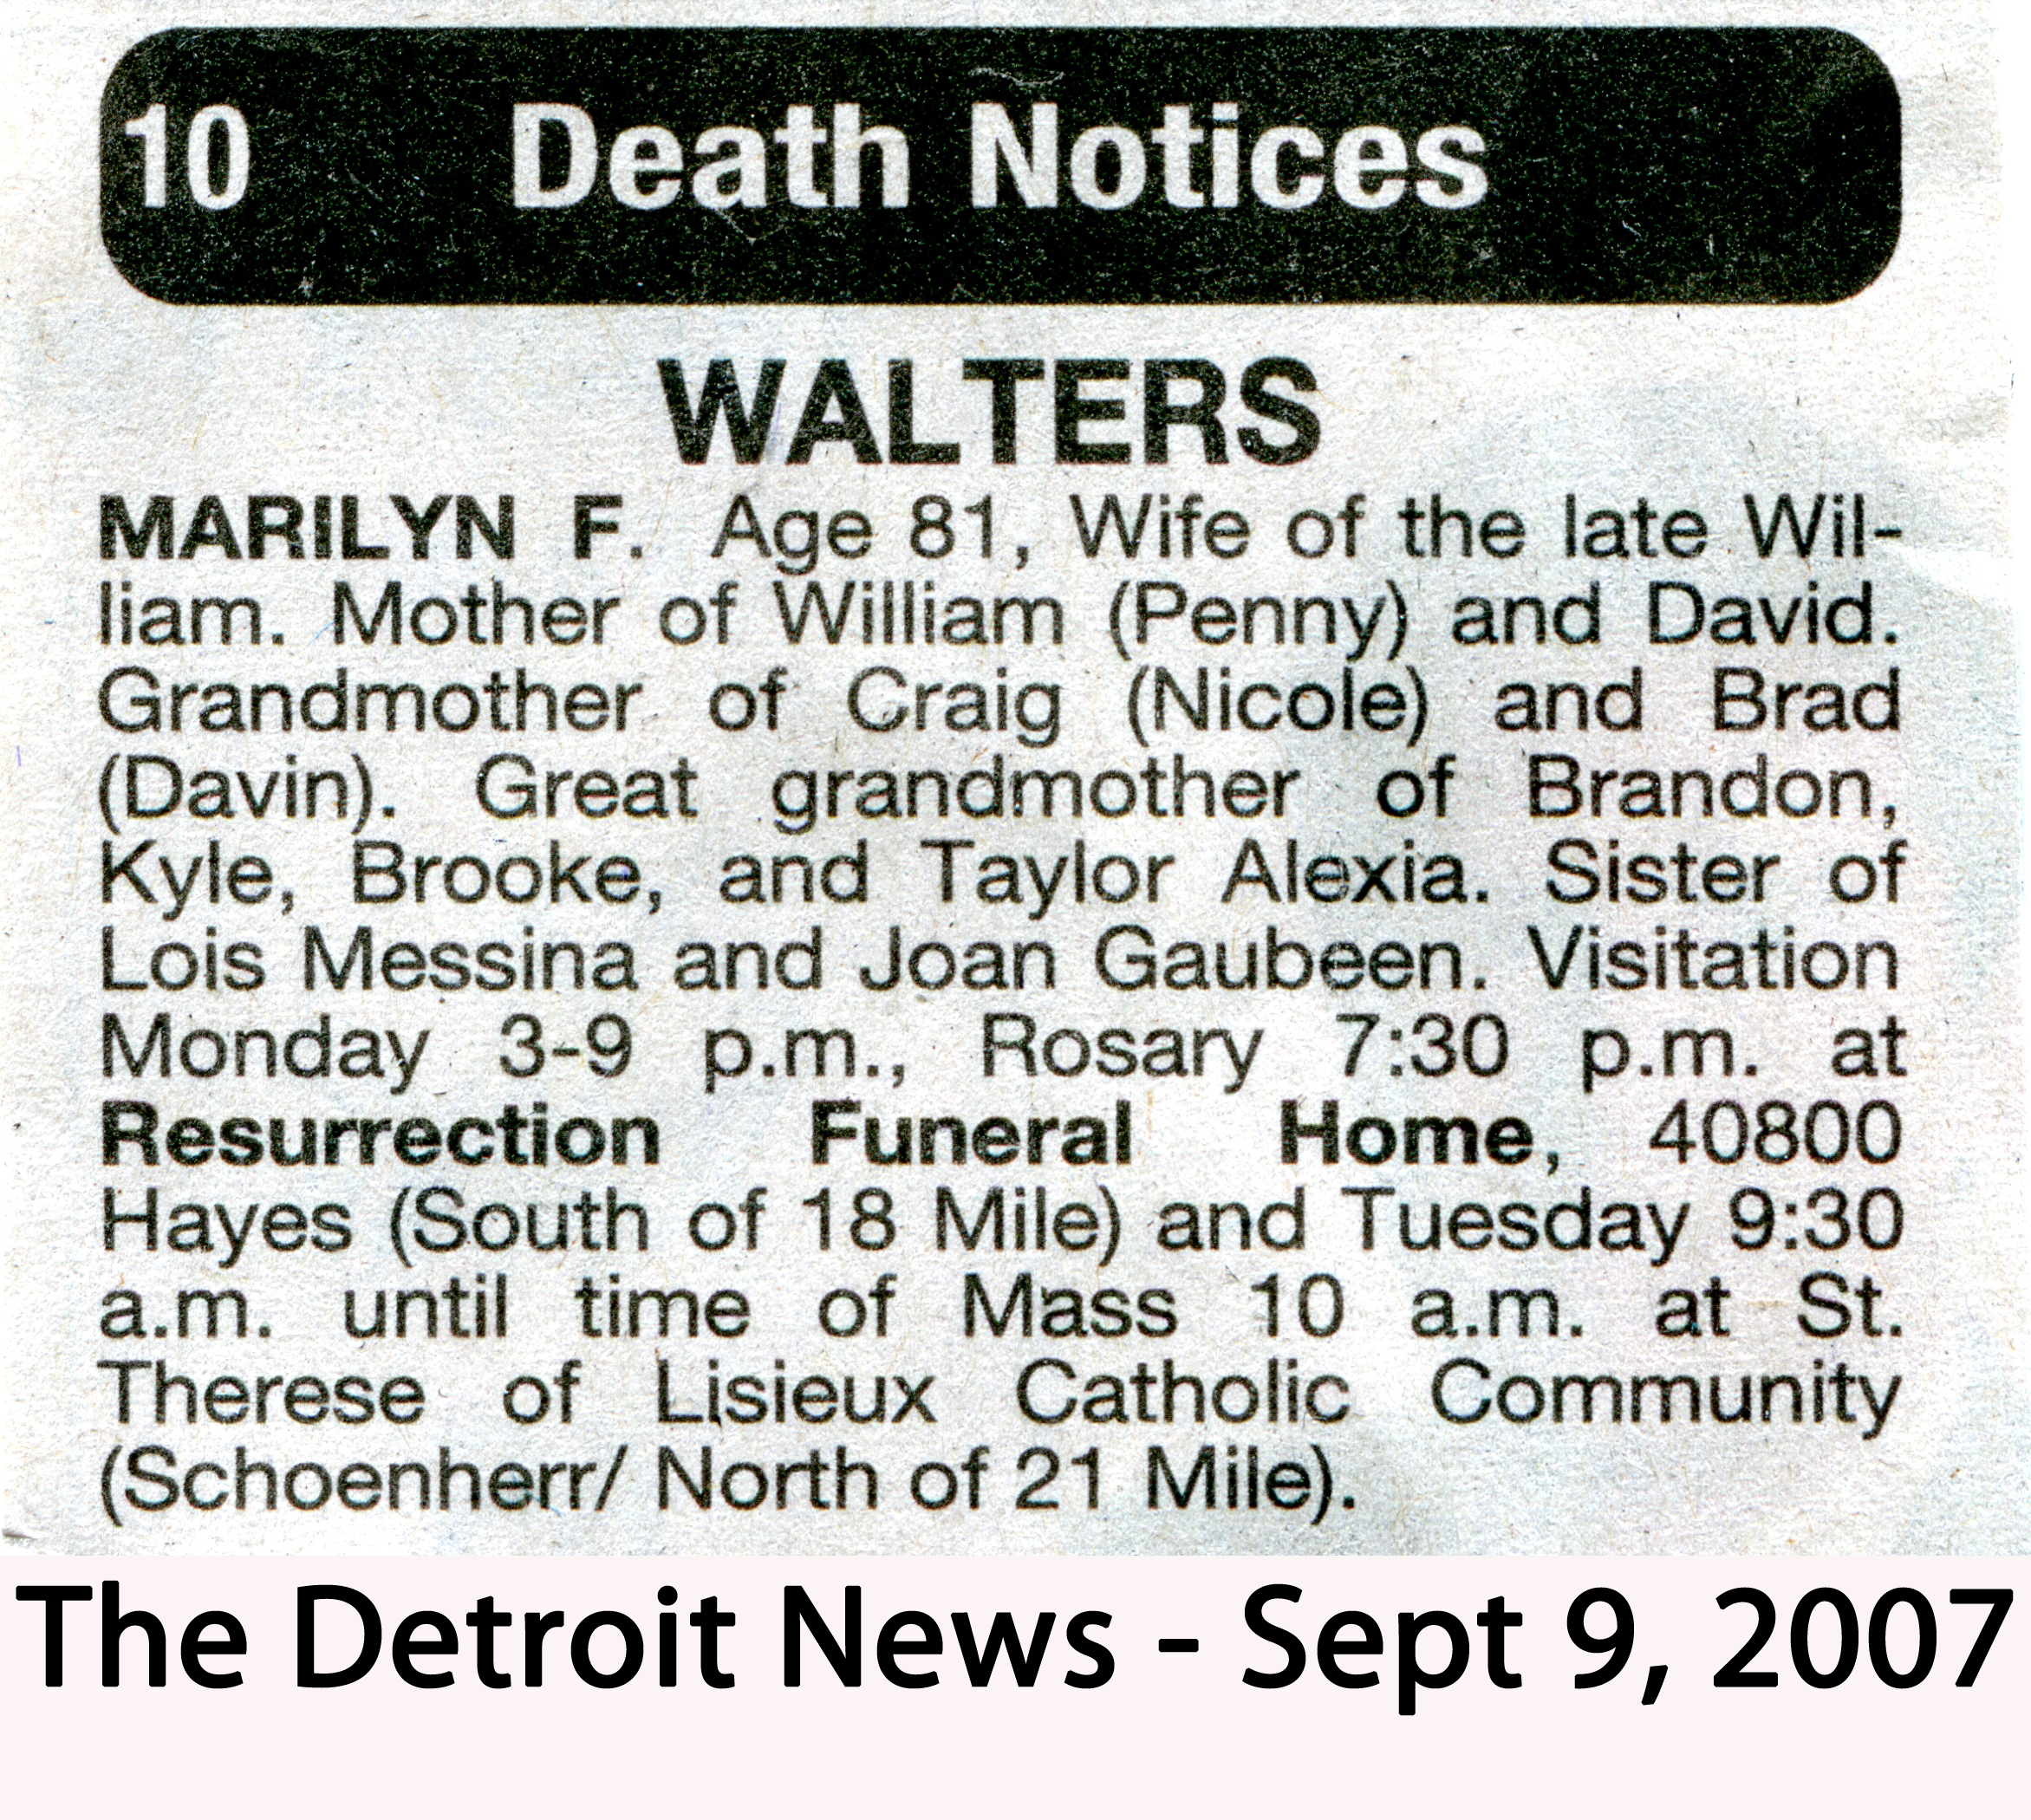 Cheating Husband Quotes Obituaries Marilyn F Waltrers Death Notice  The Detroit News